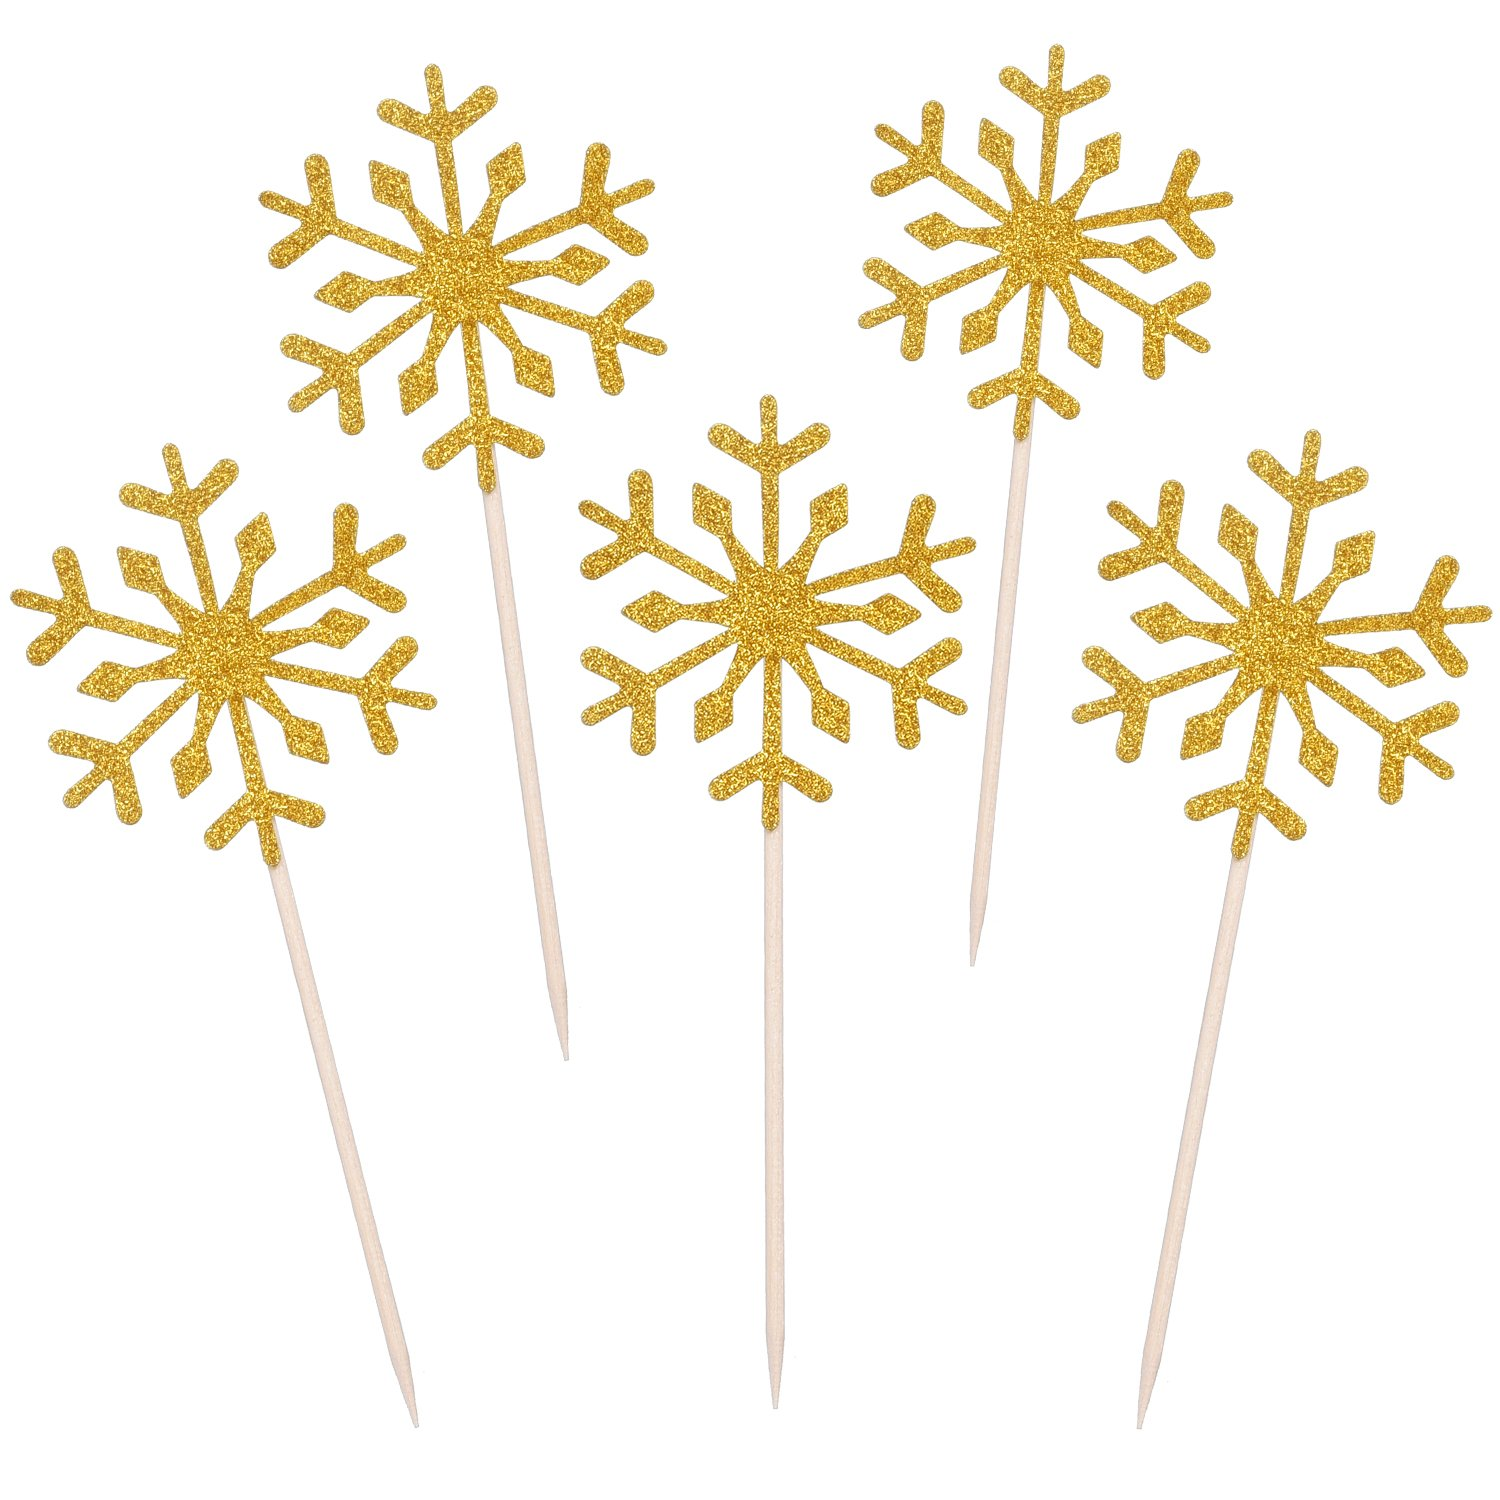 Mtlee 60 Pack Snowflake Cupcake Toppers Glitter Snowflake Cake Topper Picks for Christmas Birthday Party Baby Shower Wedding Cake Decoration (Silver)